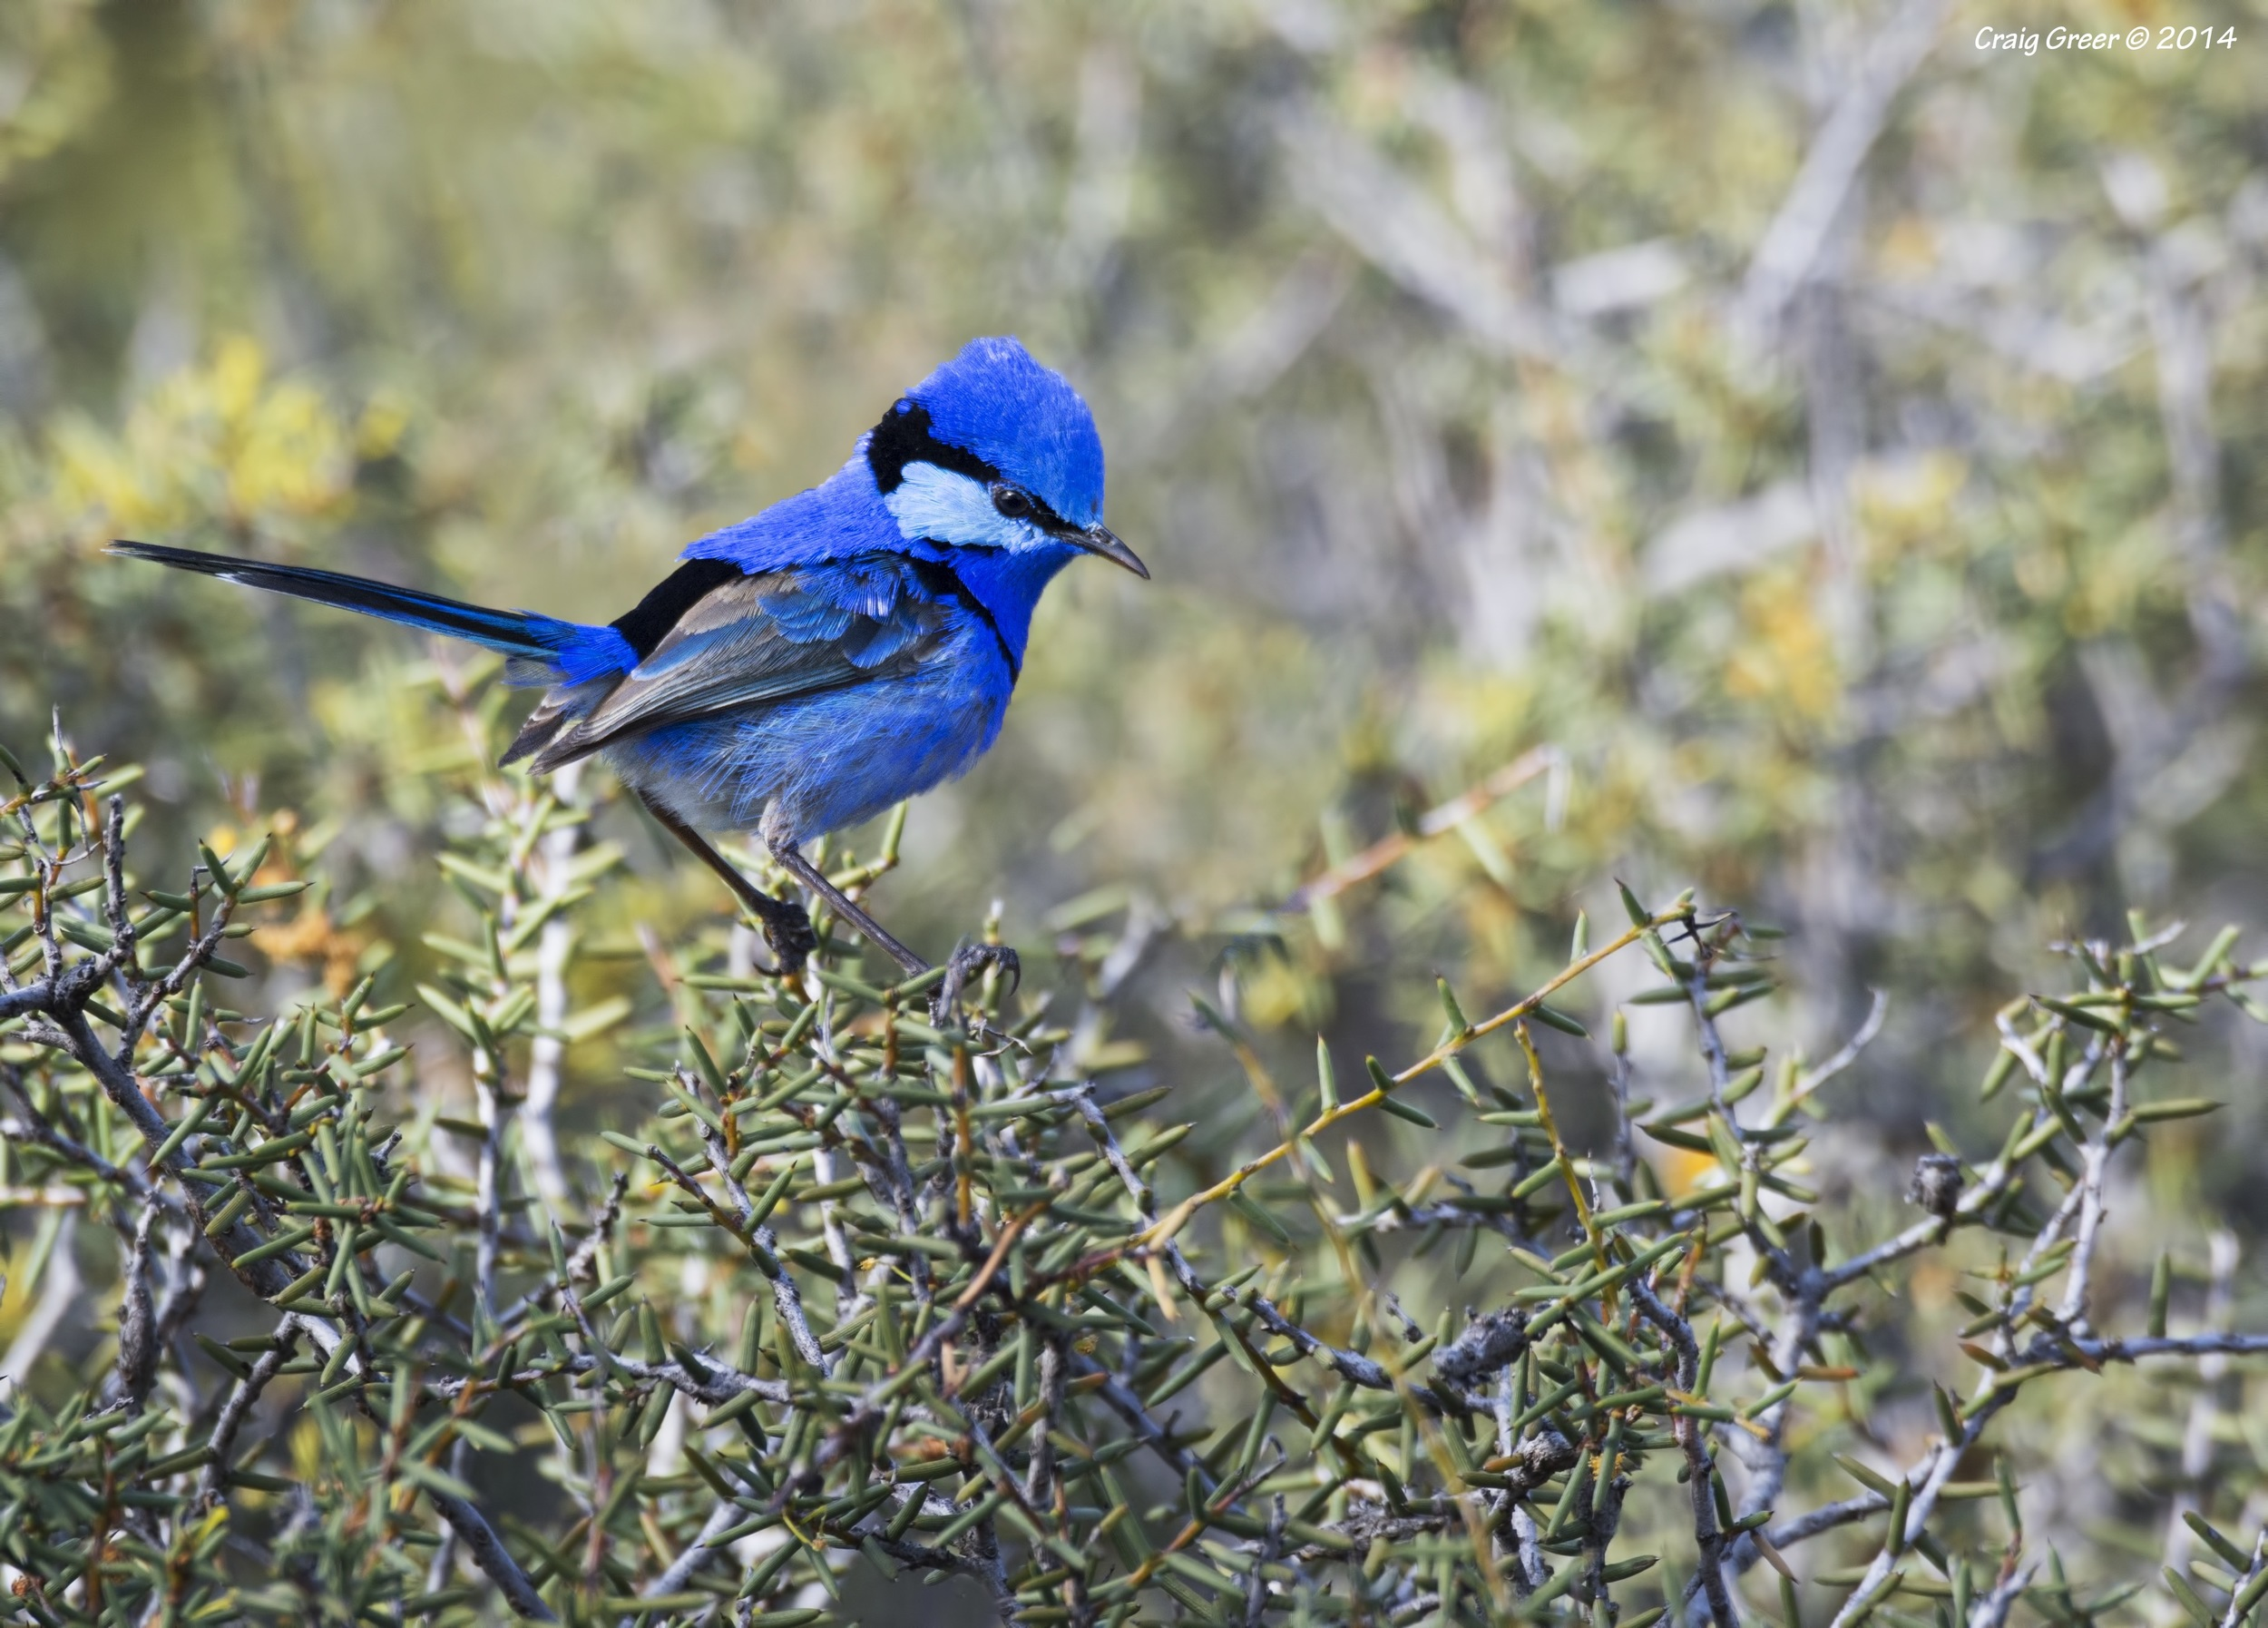 Splendid Fairy-wren | Brookfield CP